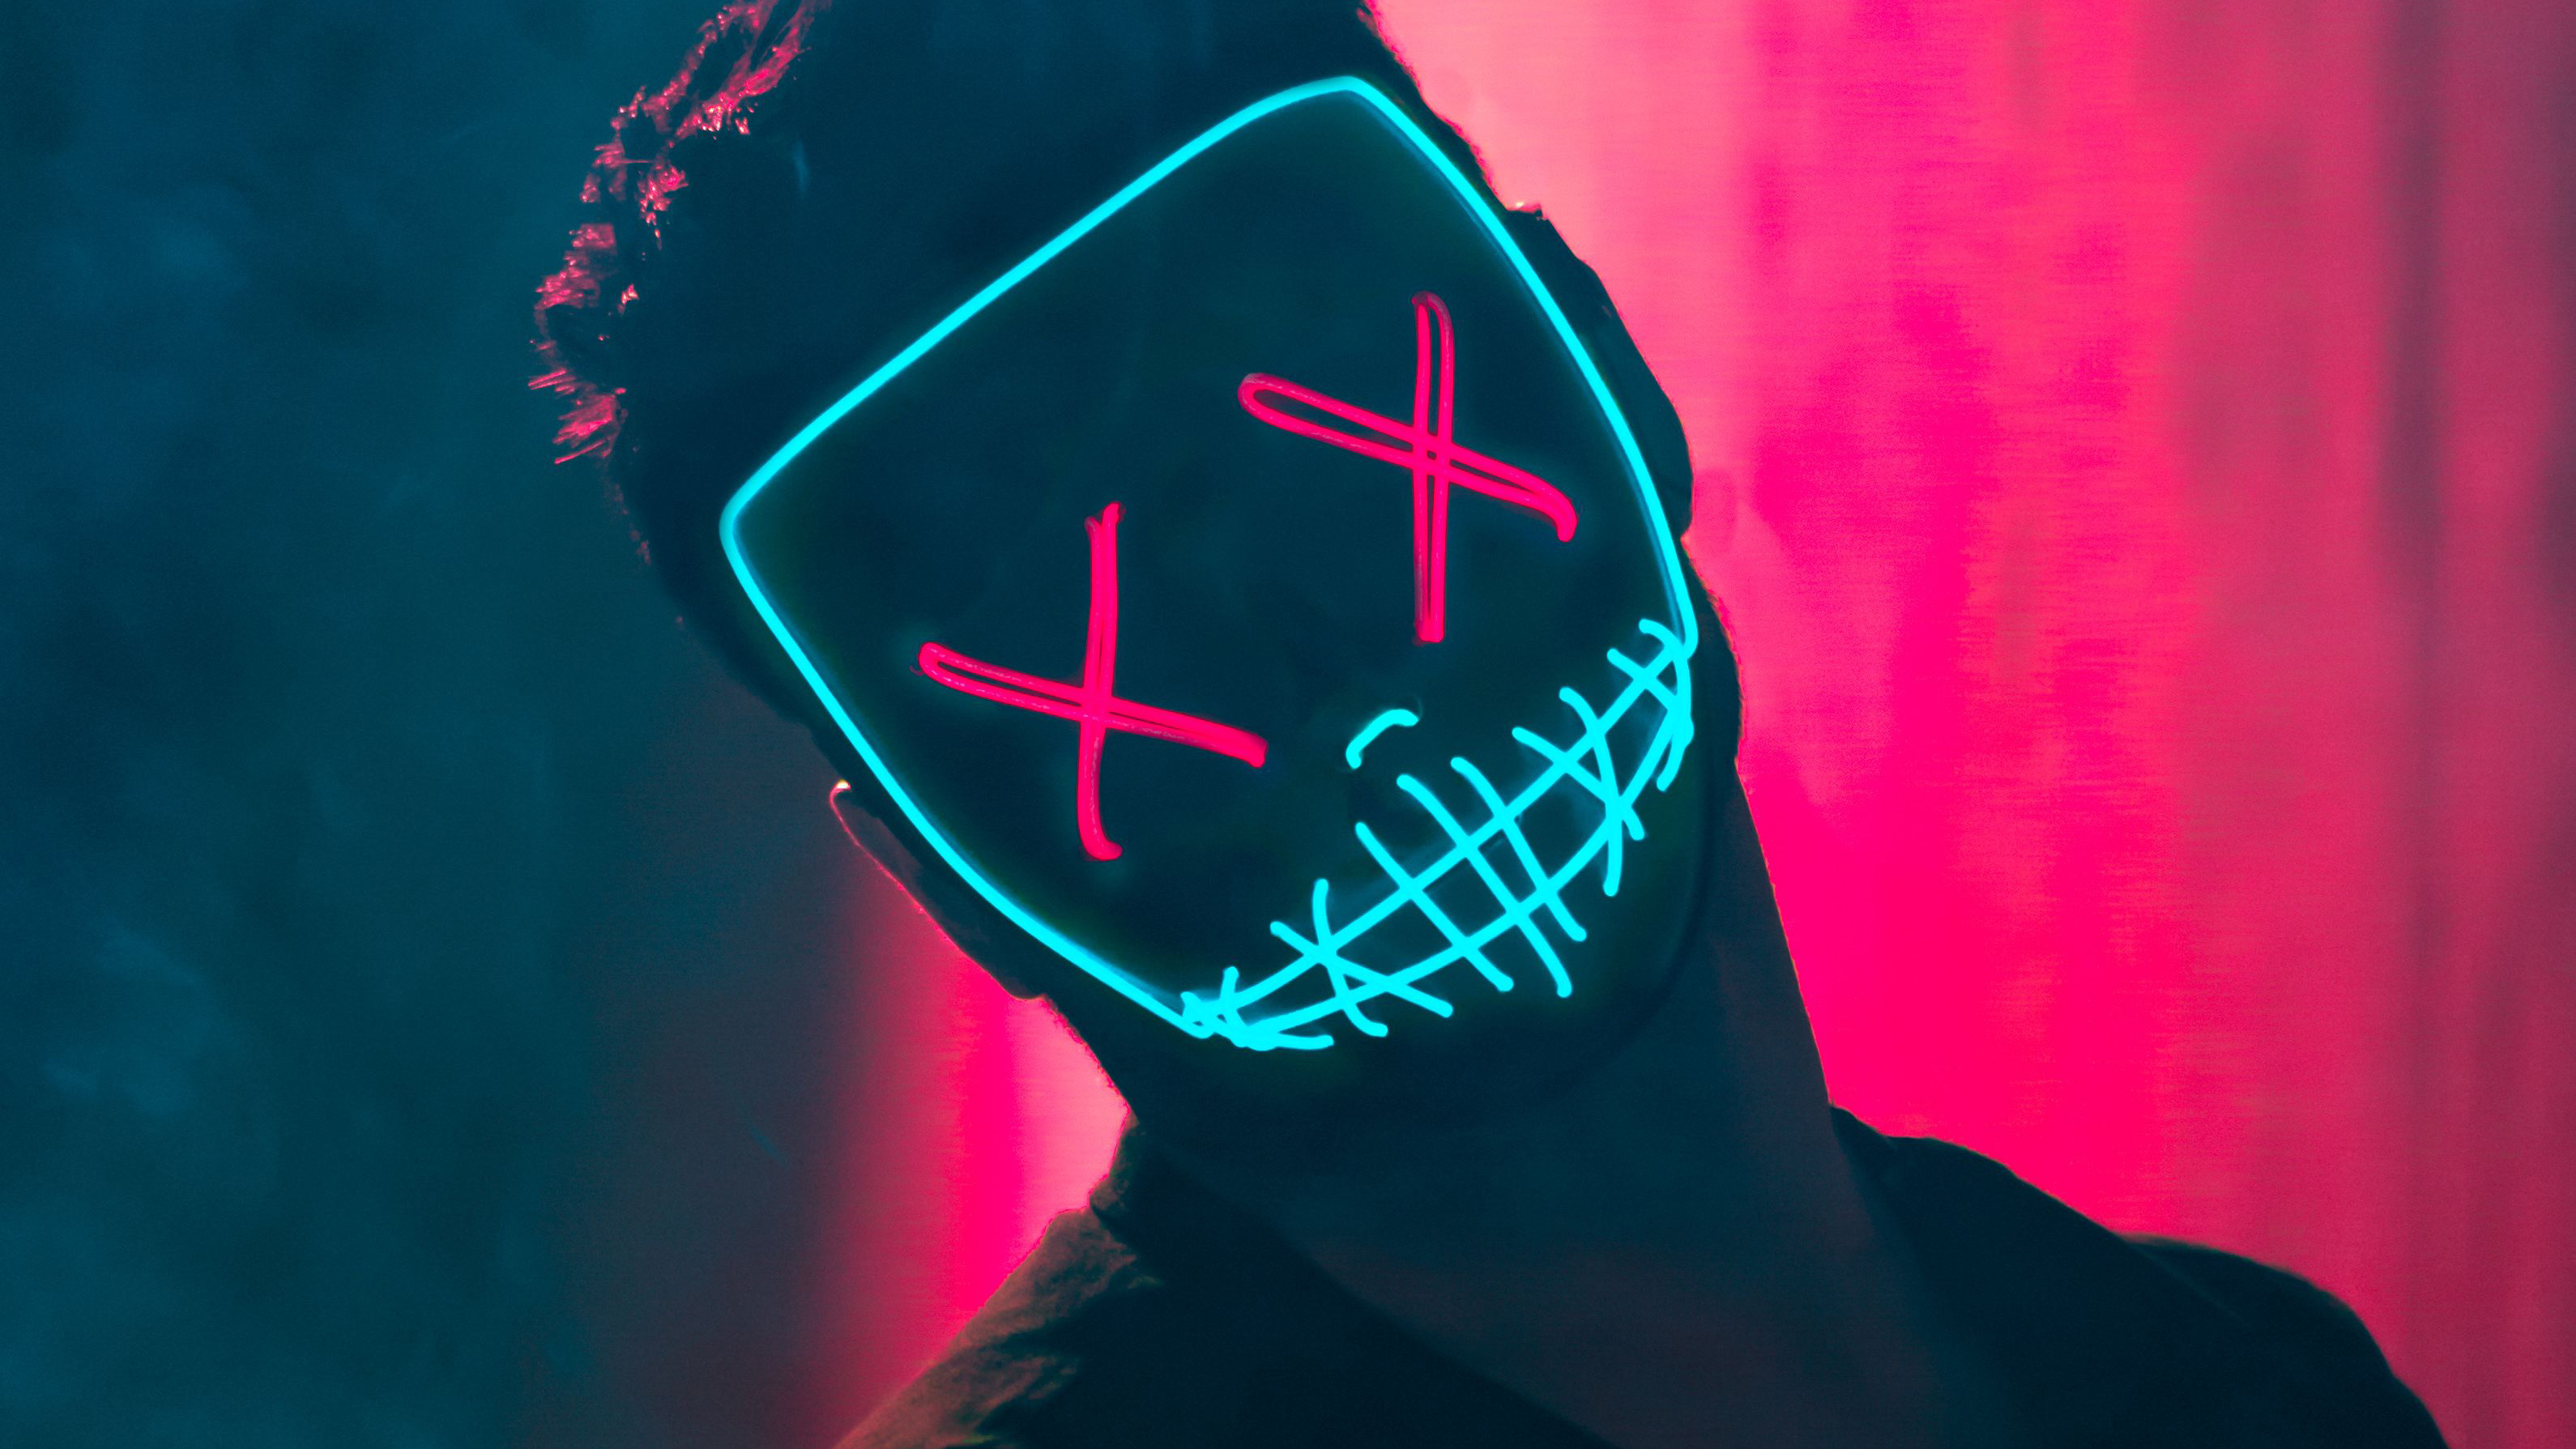 Neon Mask Guy Hd Photography 4k Wallpapers Images